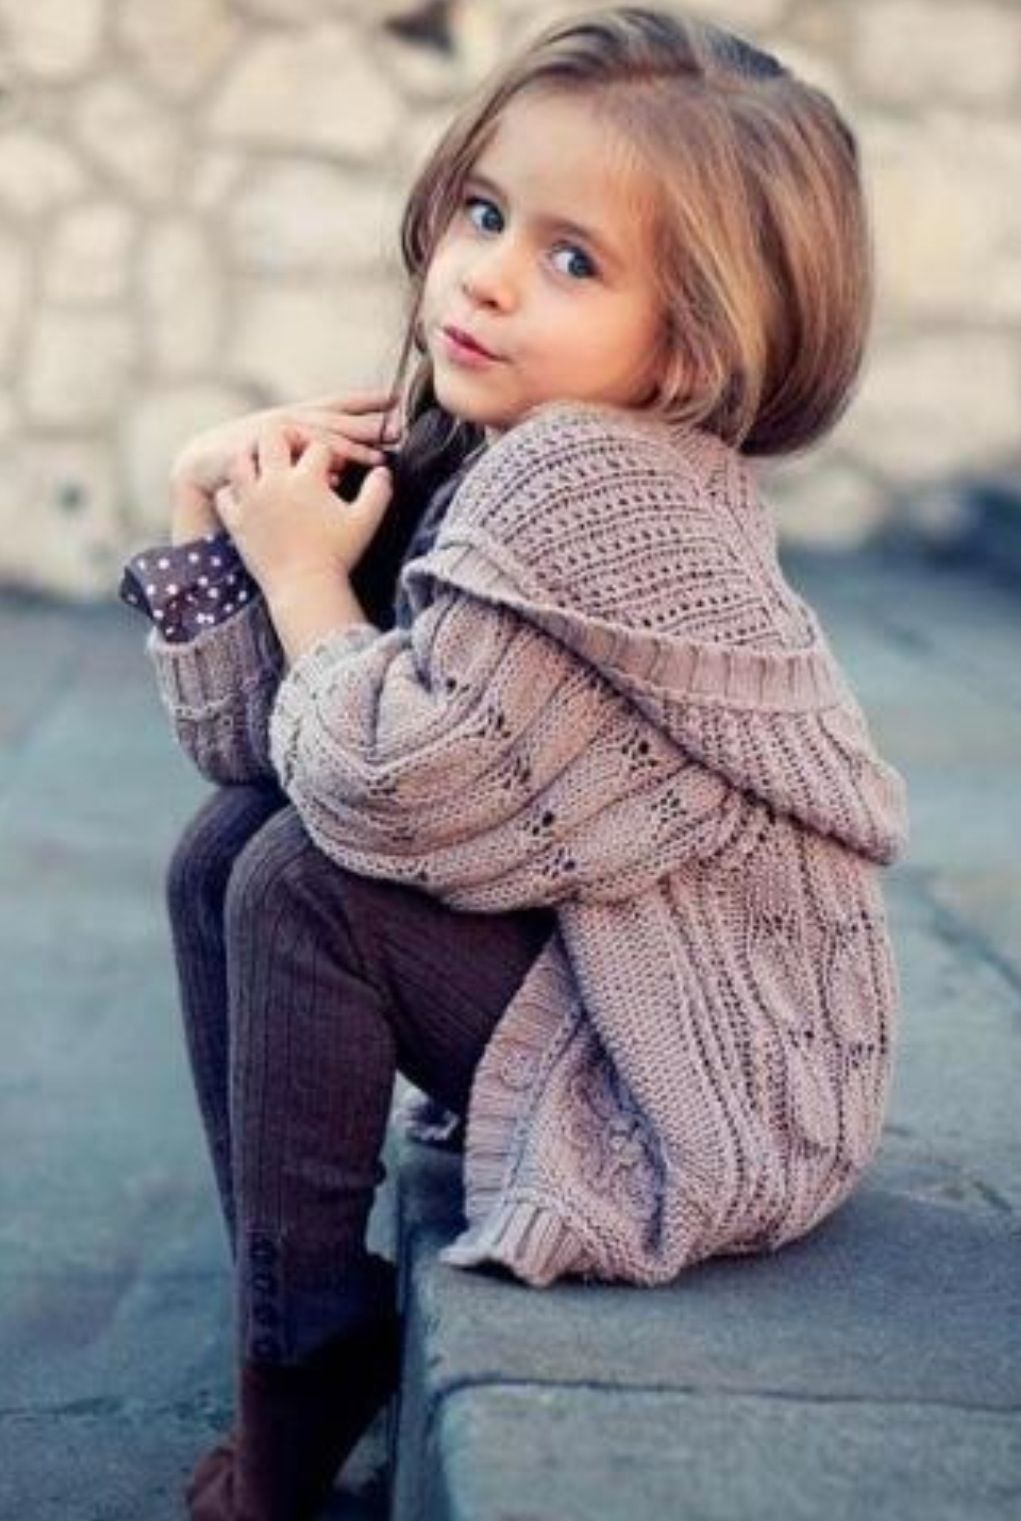 Buy Baby stylish girl photos picture trends